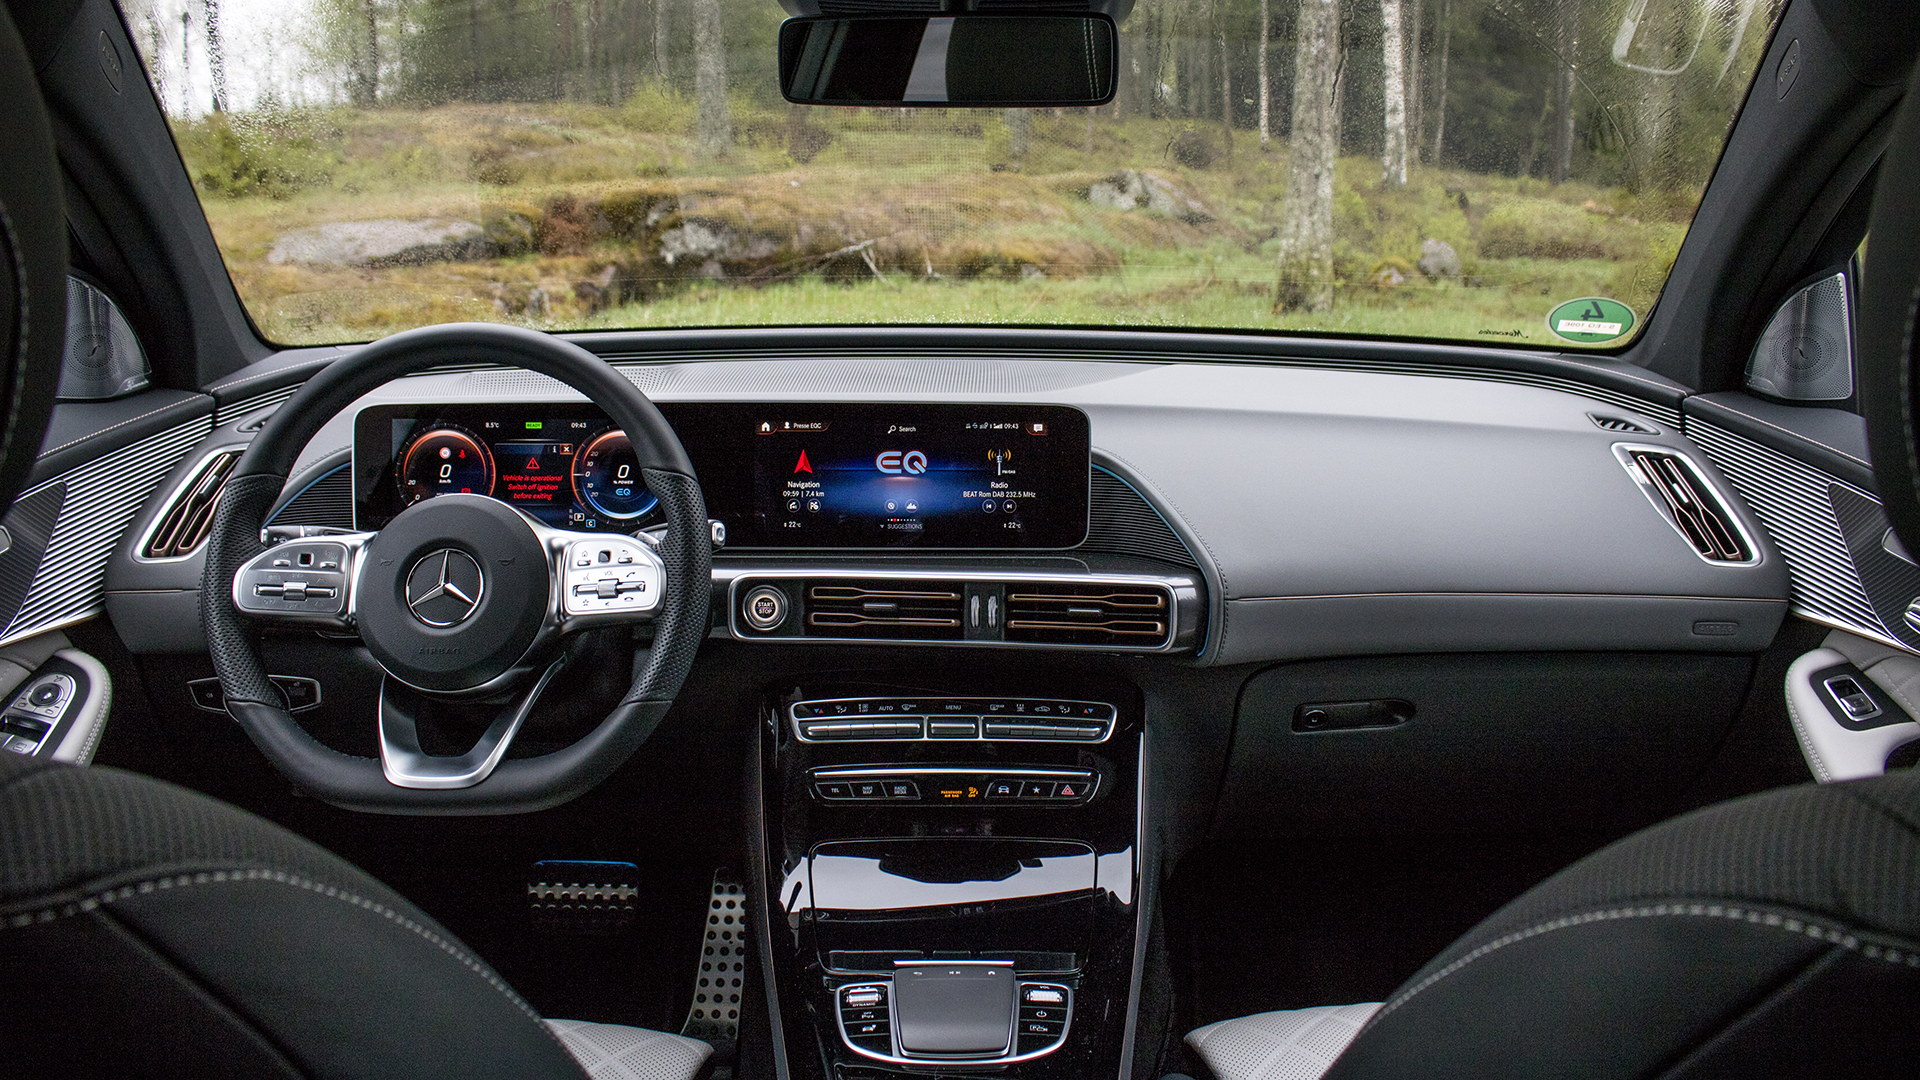 2020 Mercedes-Benz EQC 400 4Matic Review: The First Luxury Electric